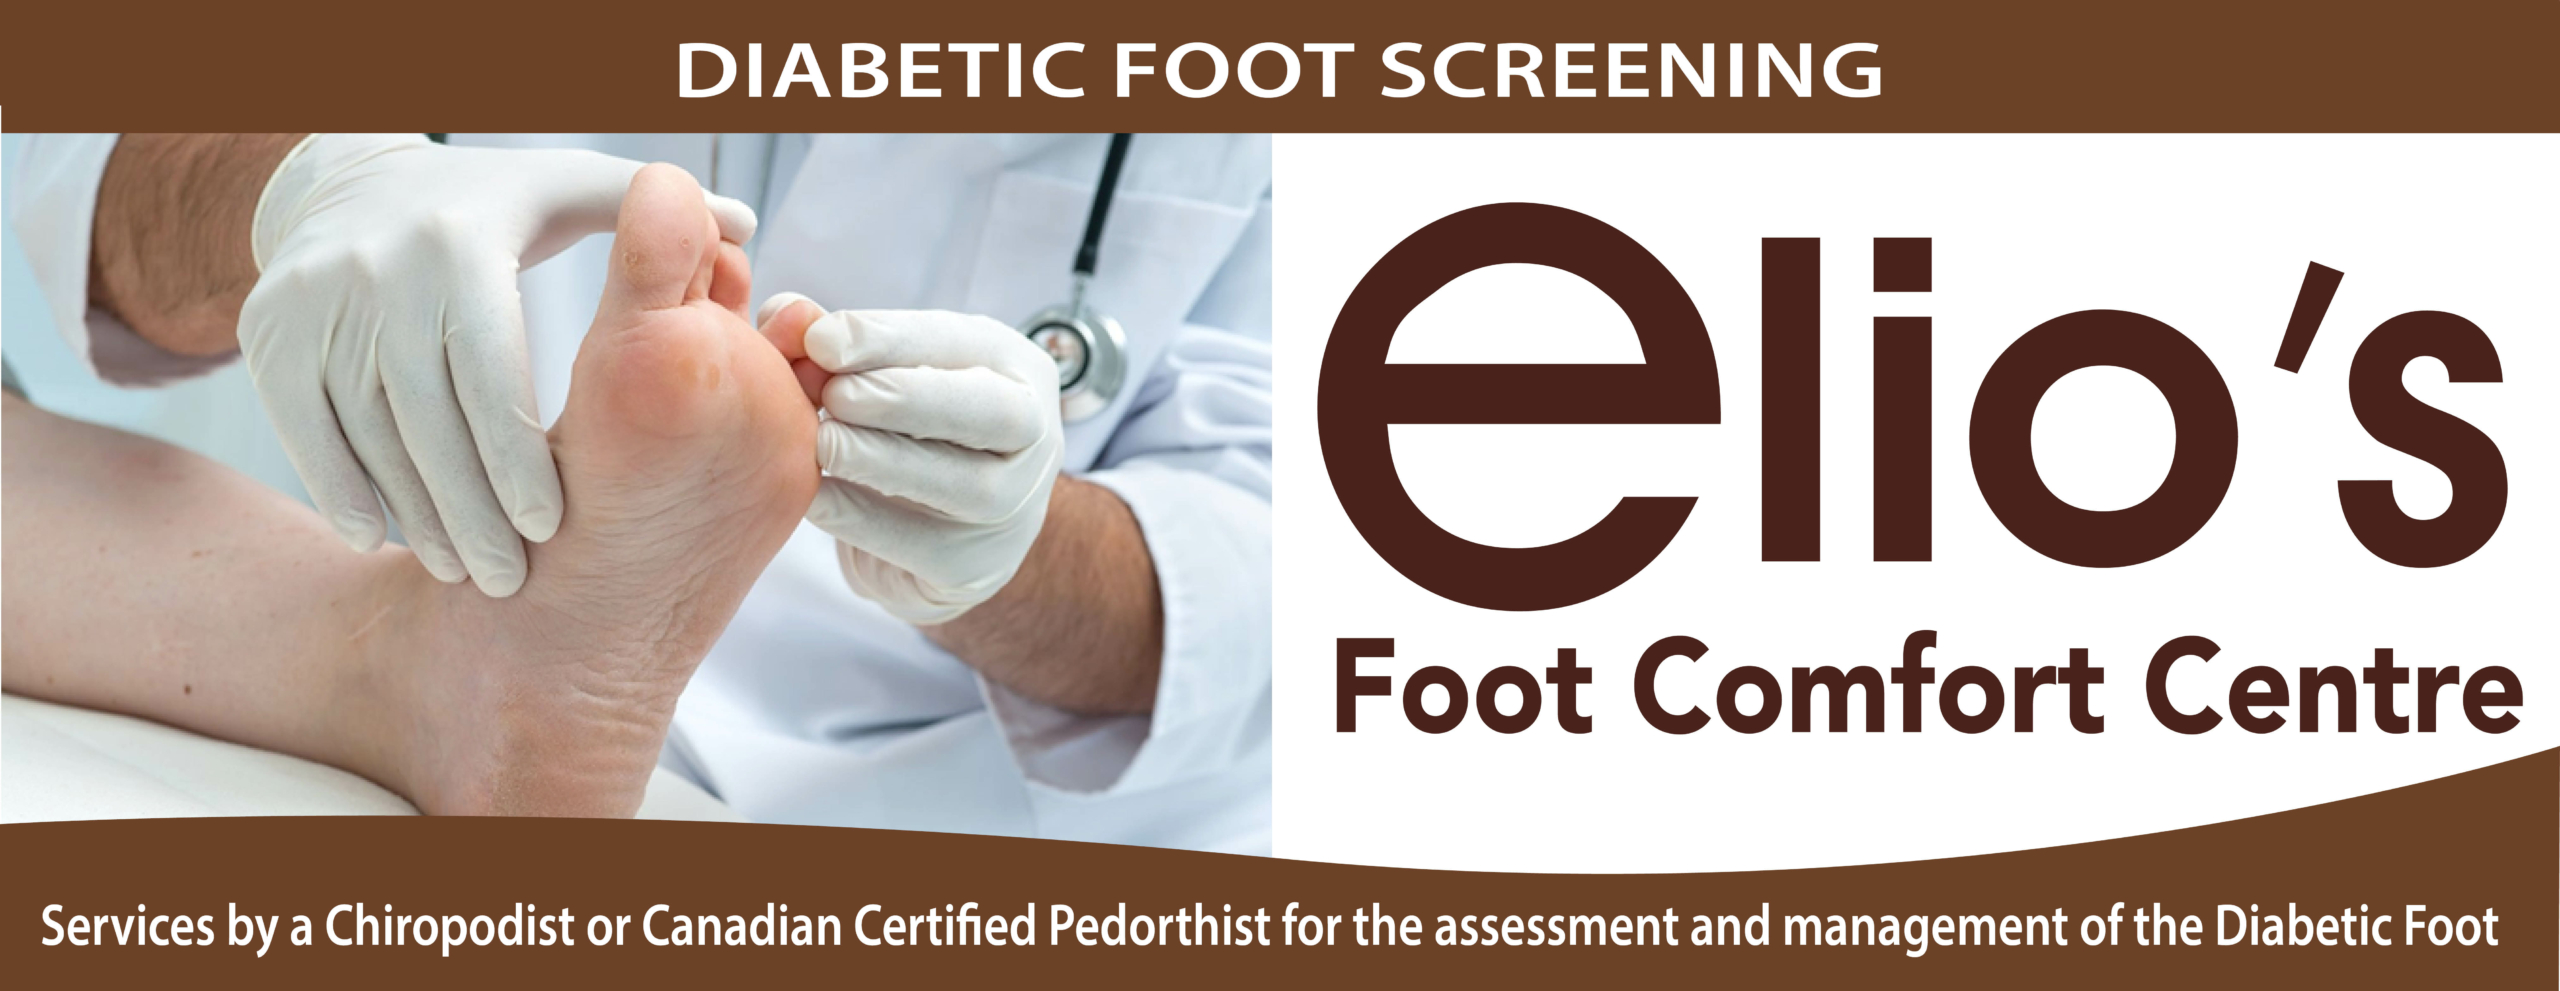 diabetic foot screening elios